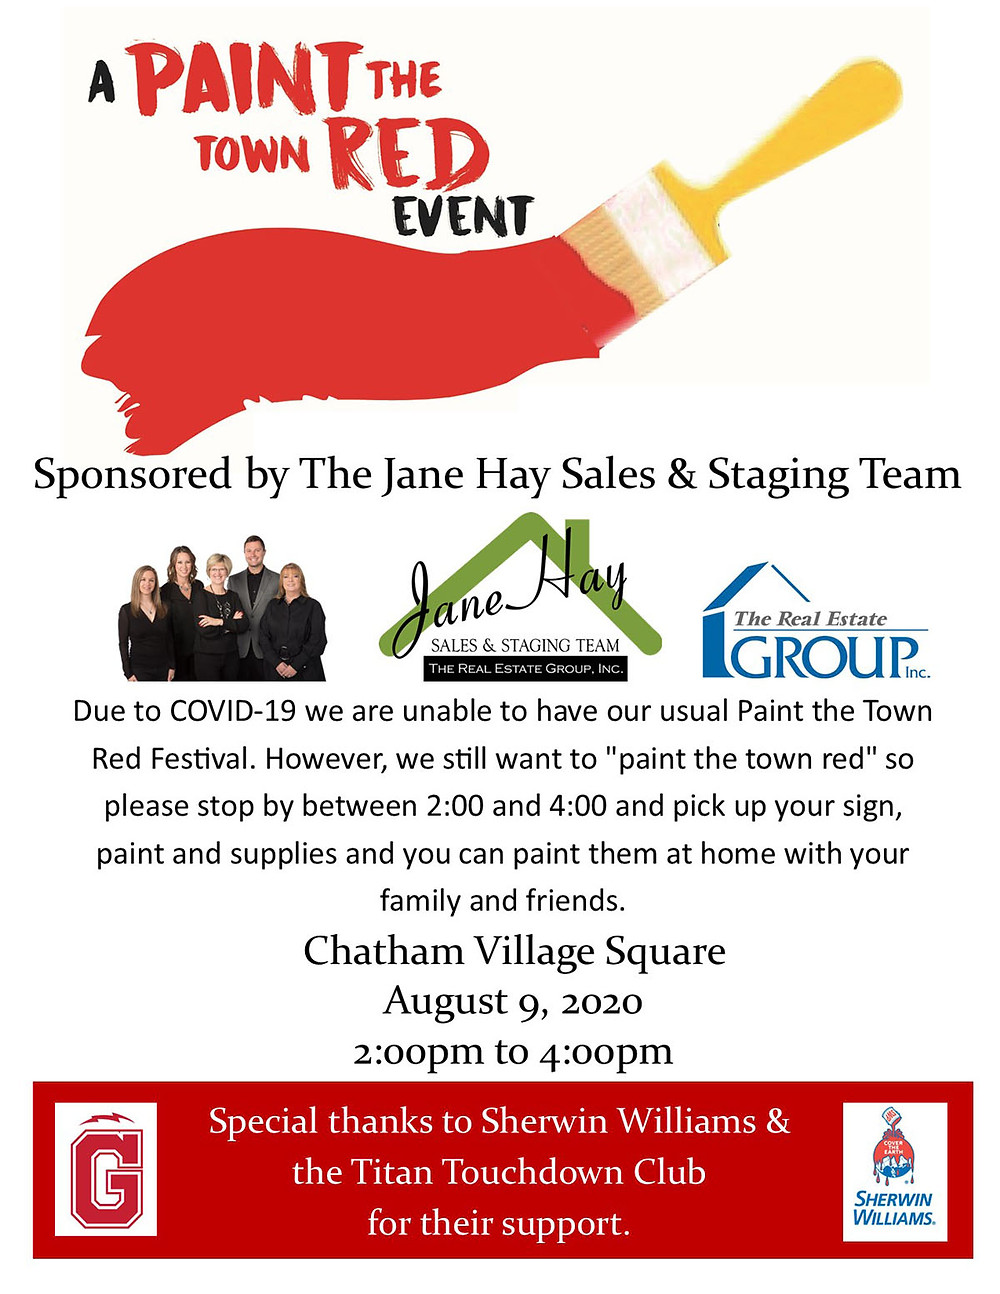 Paint the Town Red Event August 9, 2-4 p.m., Chatham Village Square